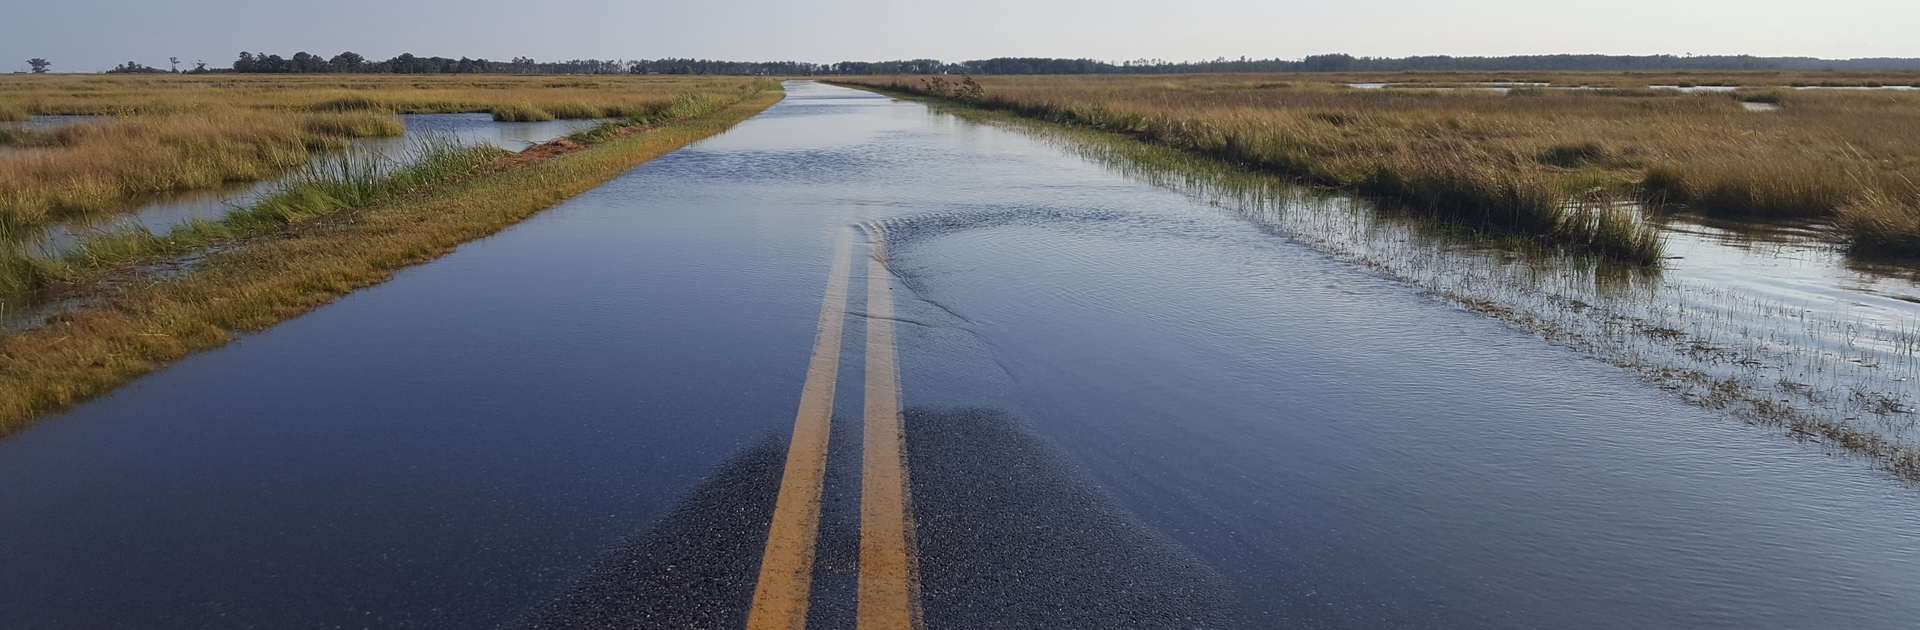 View of road flooding in Blackwater Wildlife Refuge, Dorchester County